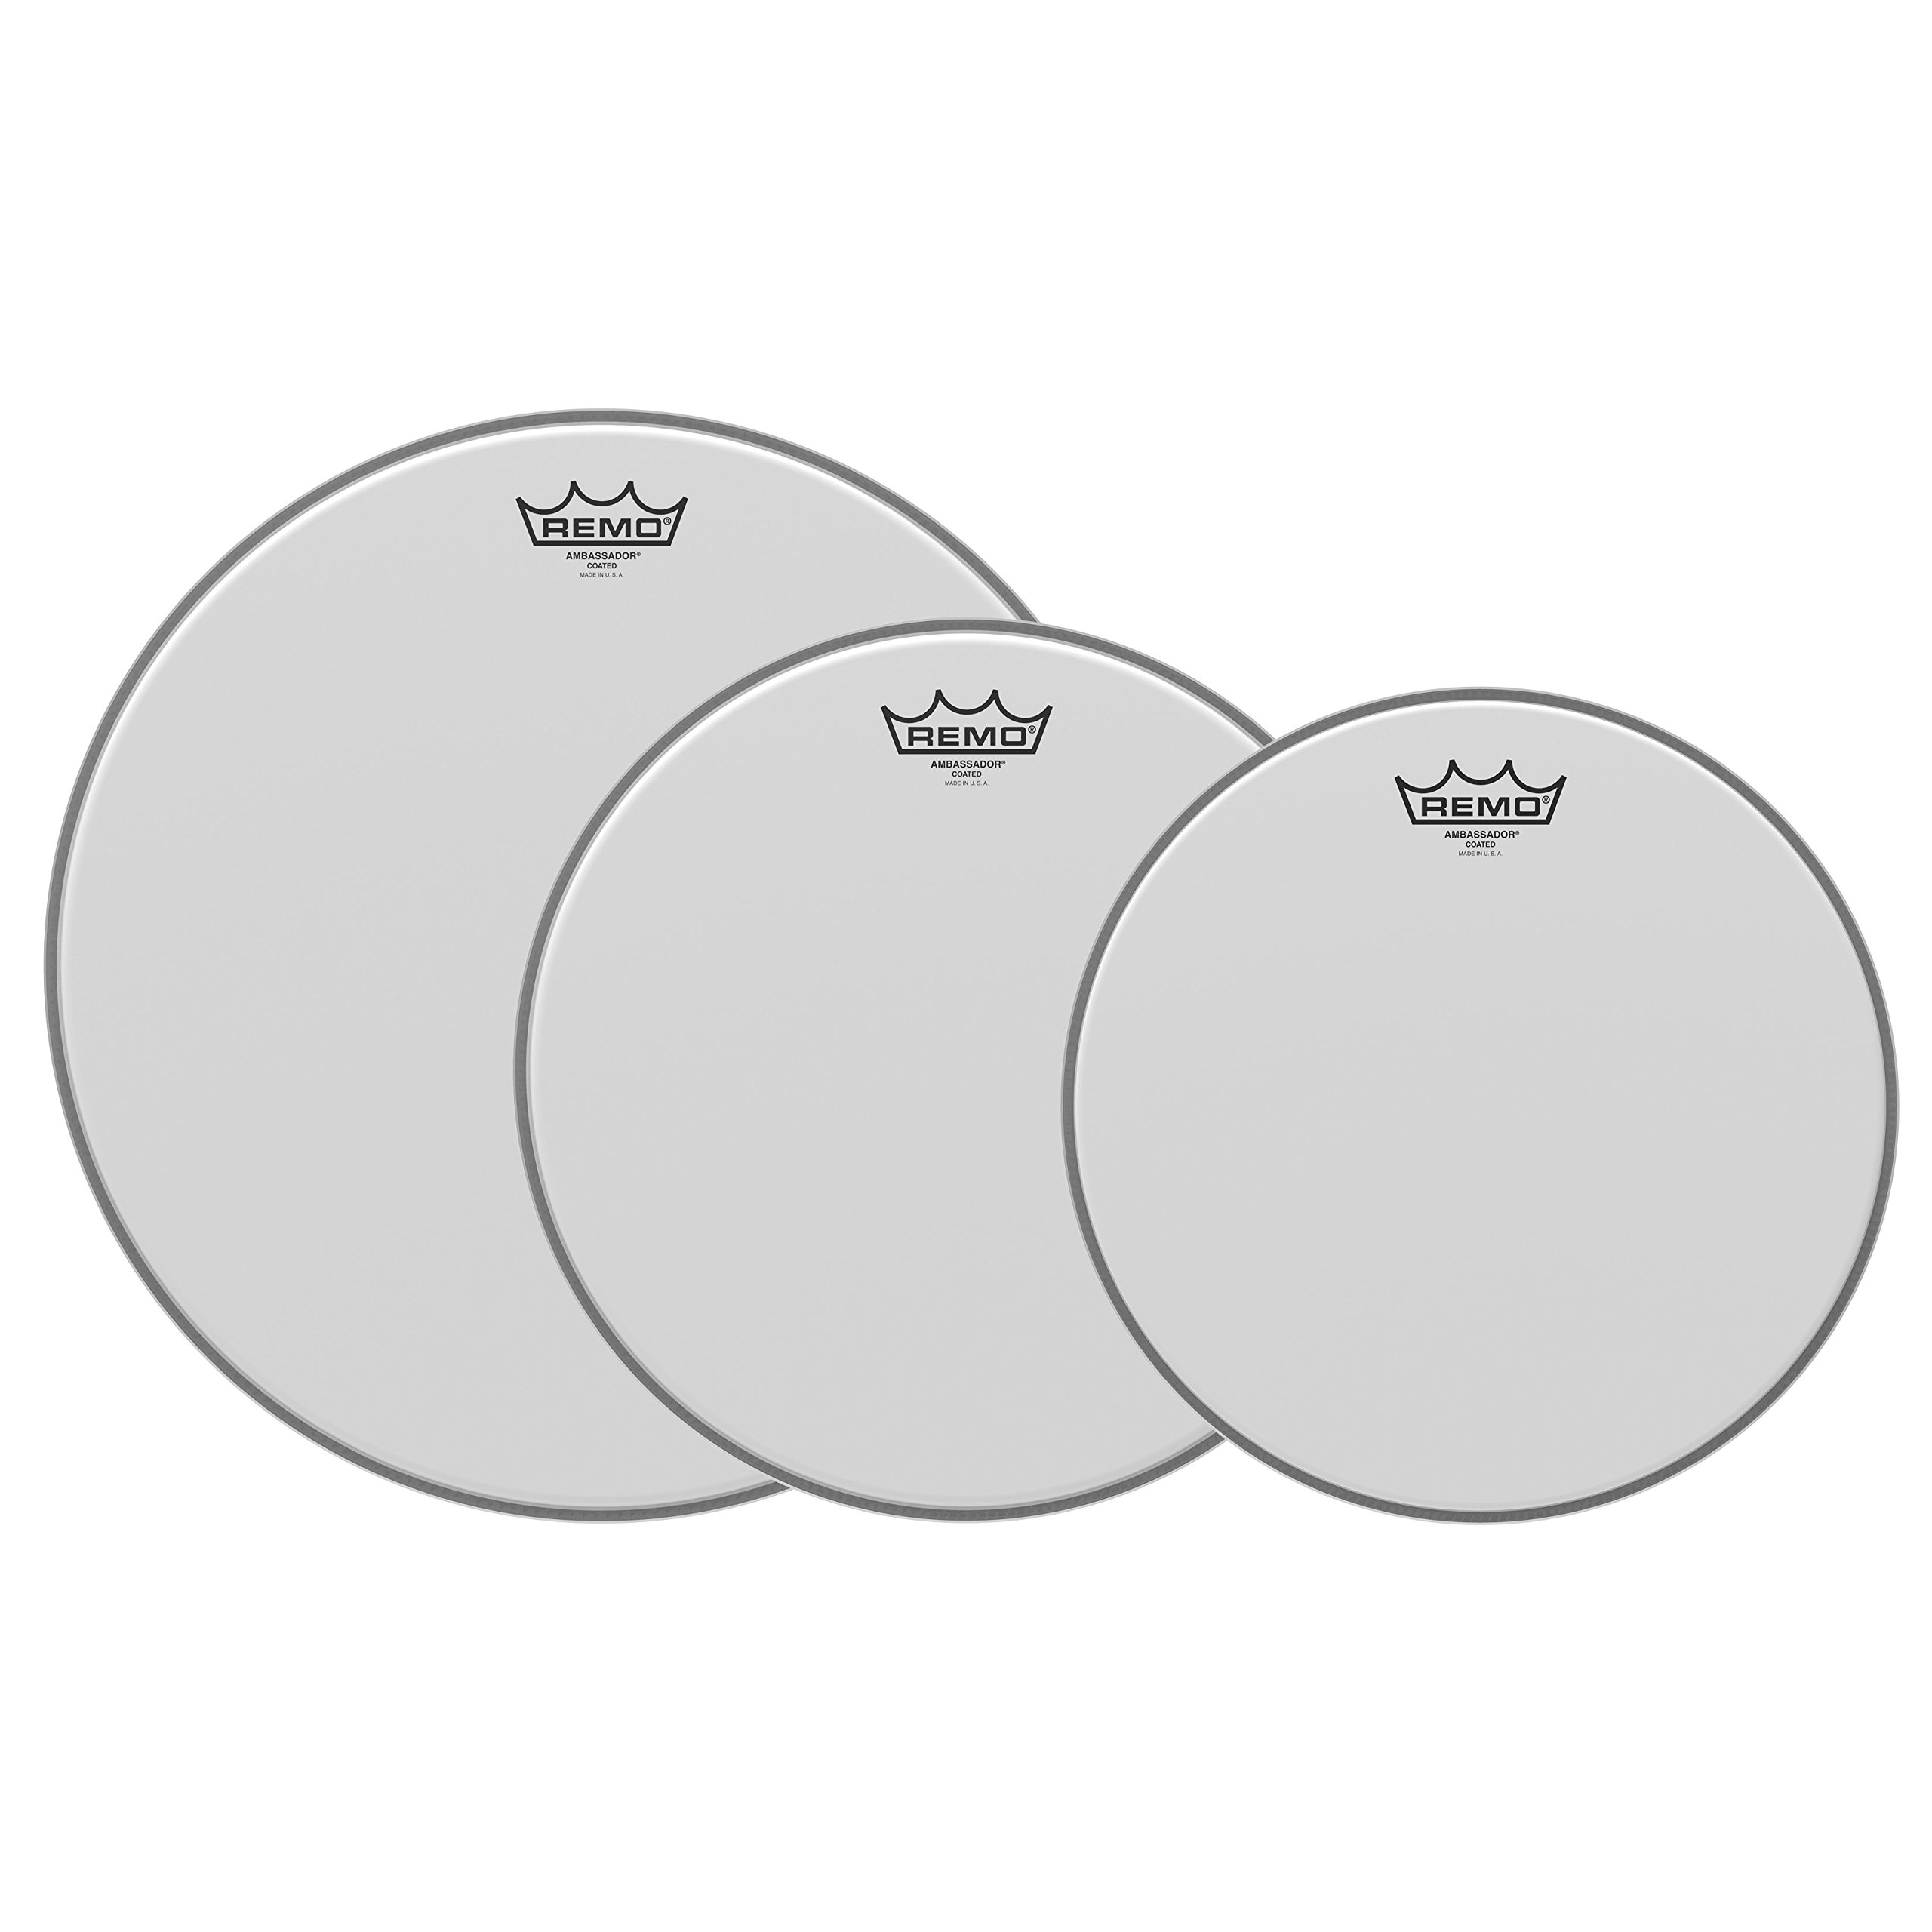 Remo PP-0930-BA Ambassador Coated Tom Drumhead Pack - 12'', 13'' & 16''